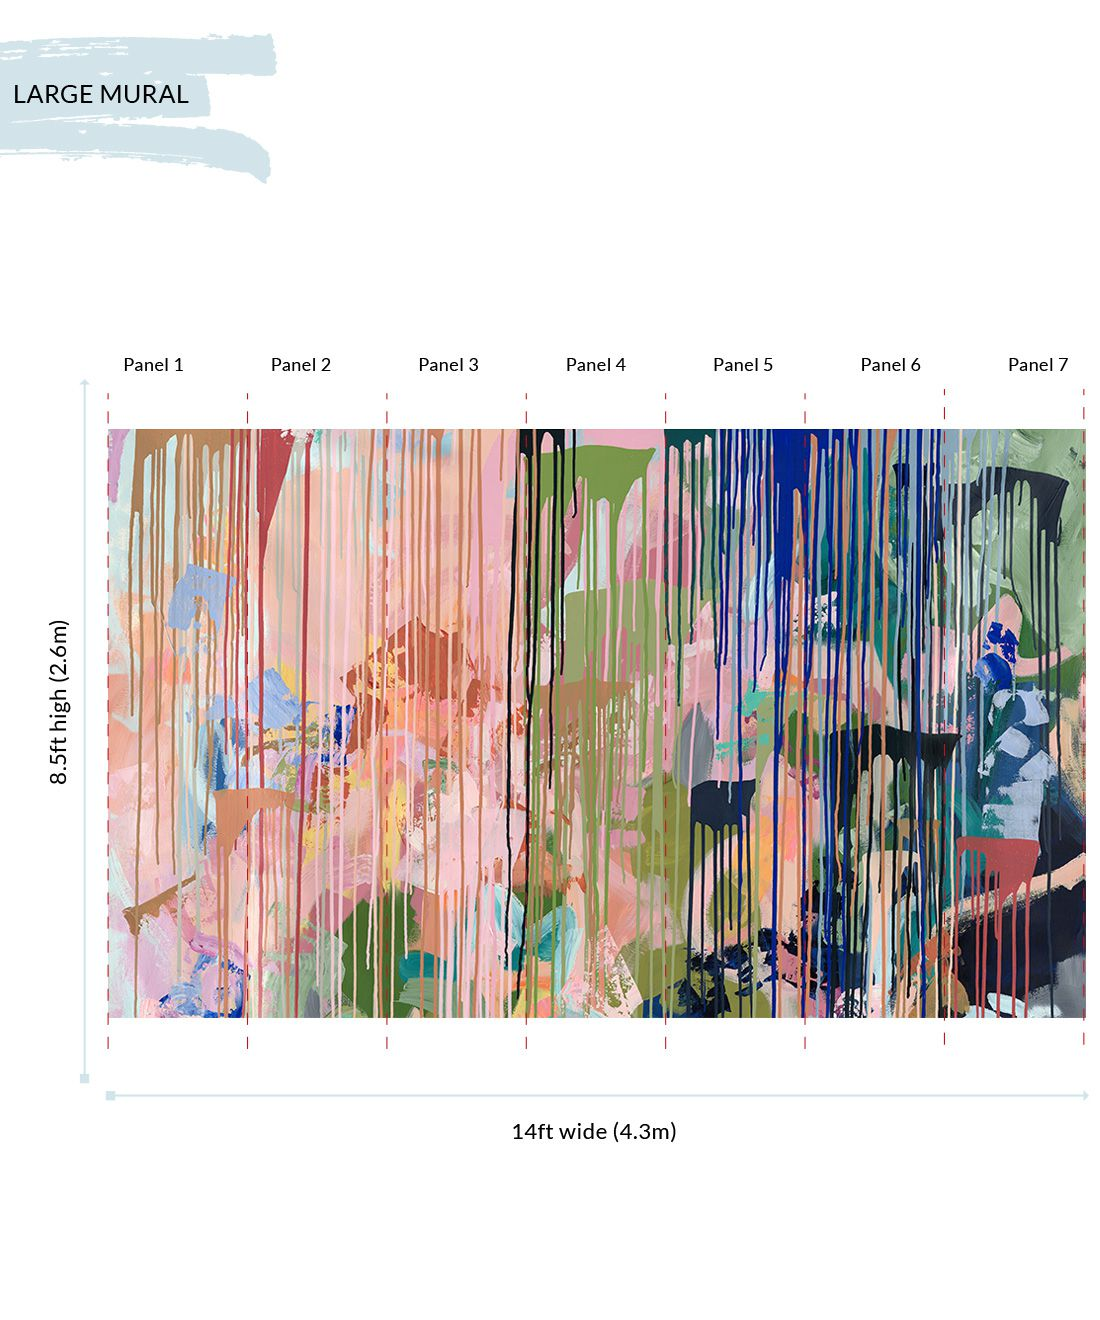 Path Less Travelled Wallpaper Mural •Colourful Painterly Wallpaper • Tiff Manuell • Abstract Expressionist Wallpaper • Large Mural